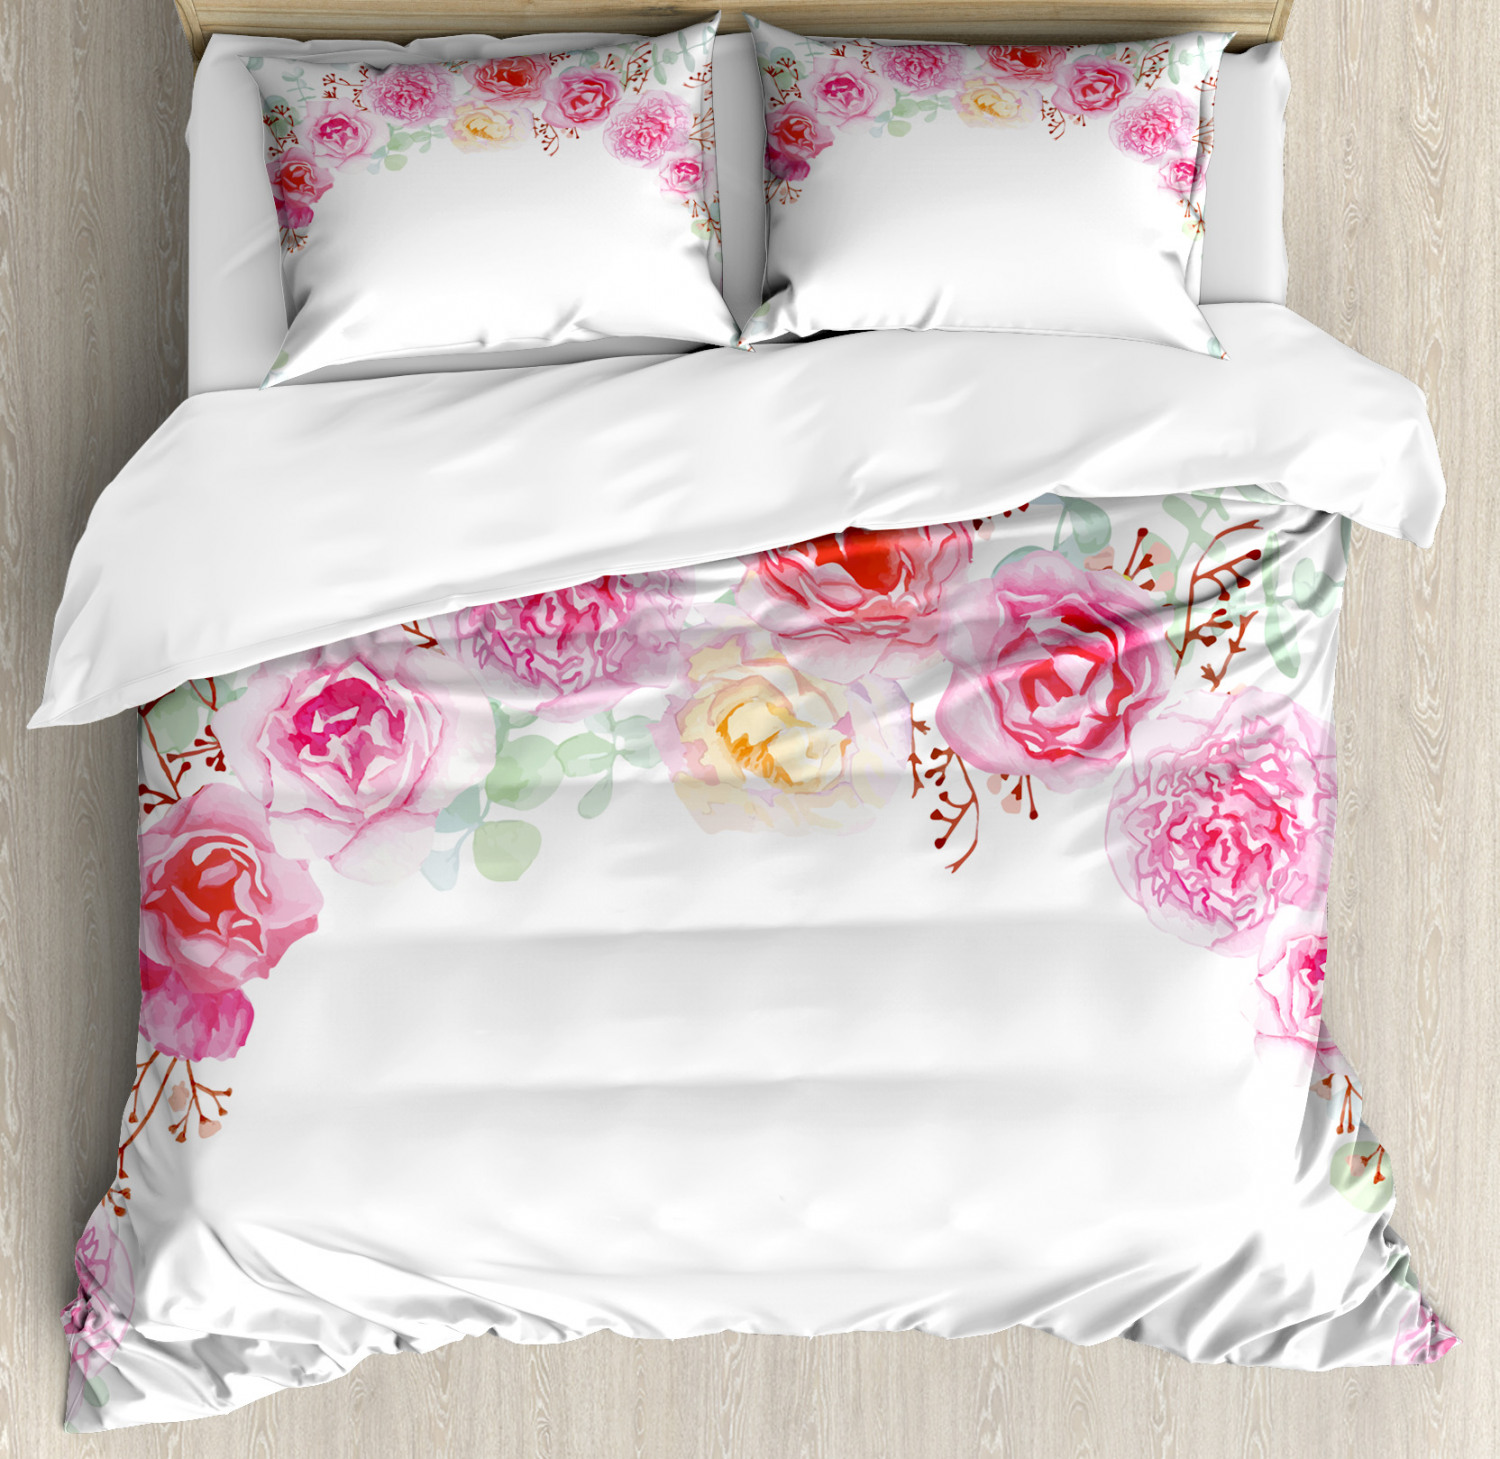 Shabby Chic Duvet Cover Set With Pillow Shams Floral